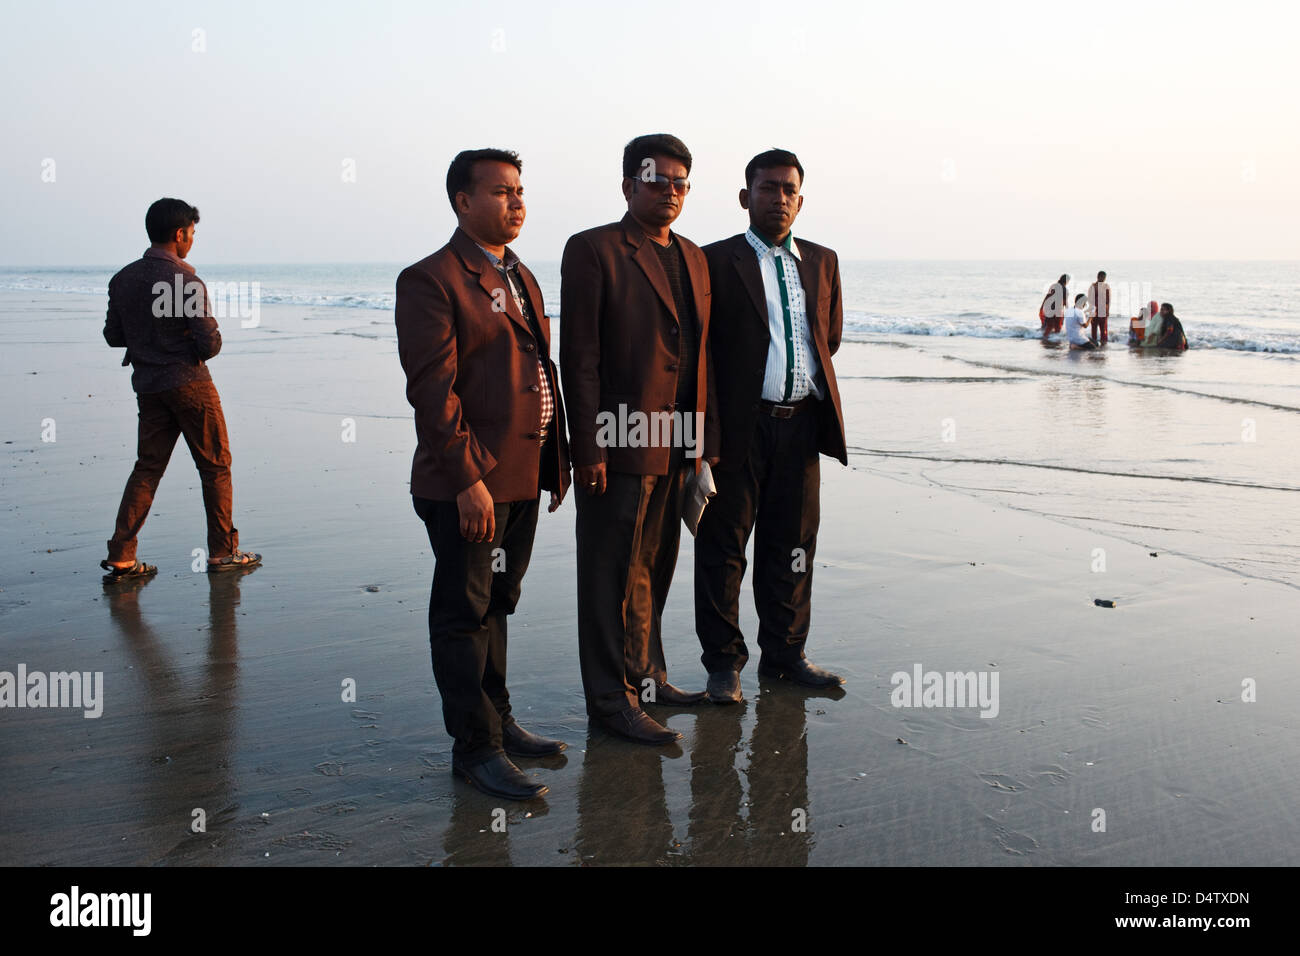 Bangladeshi visitors tourists on the beach in Cox's Bazar, Bangladesh Stock Photo